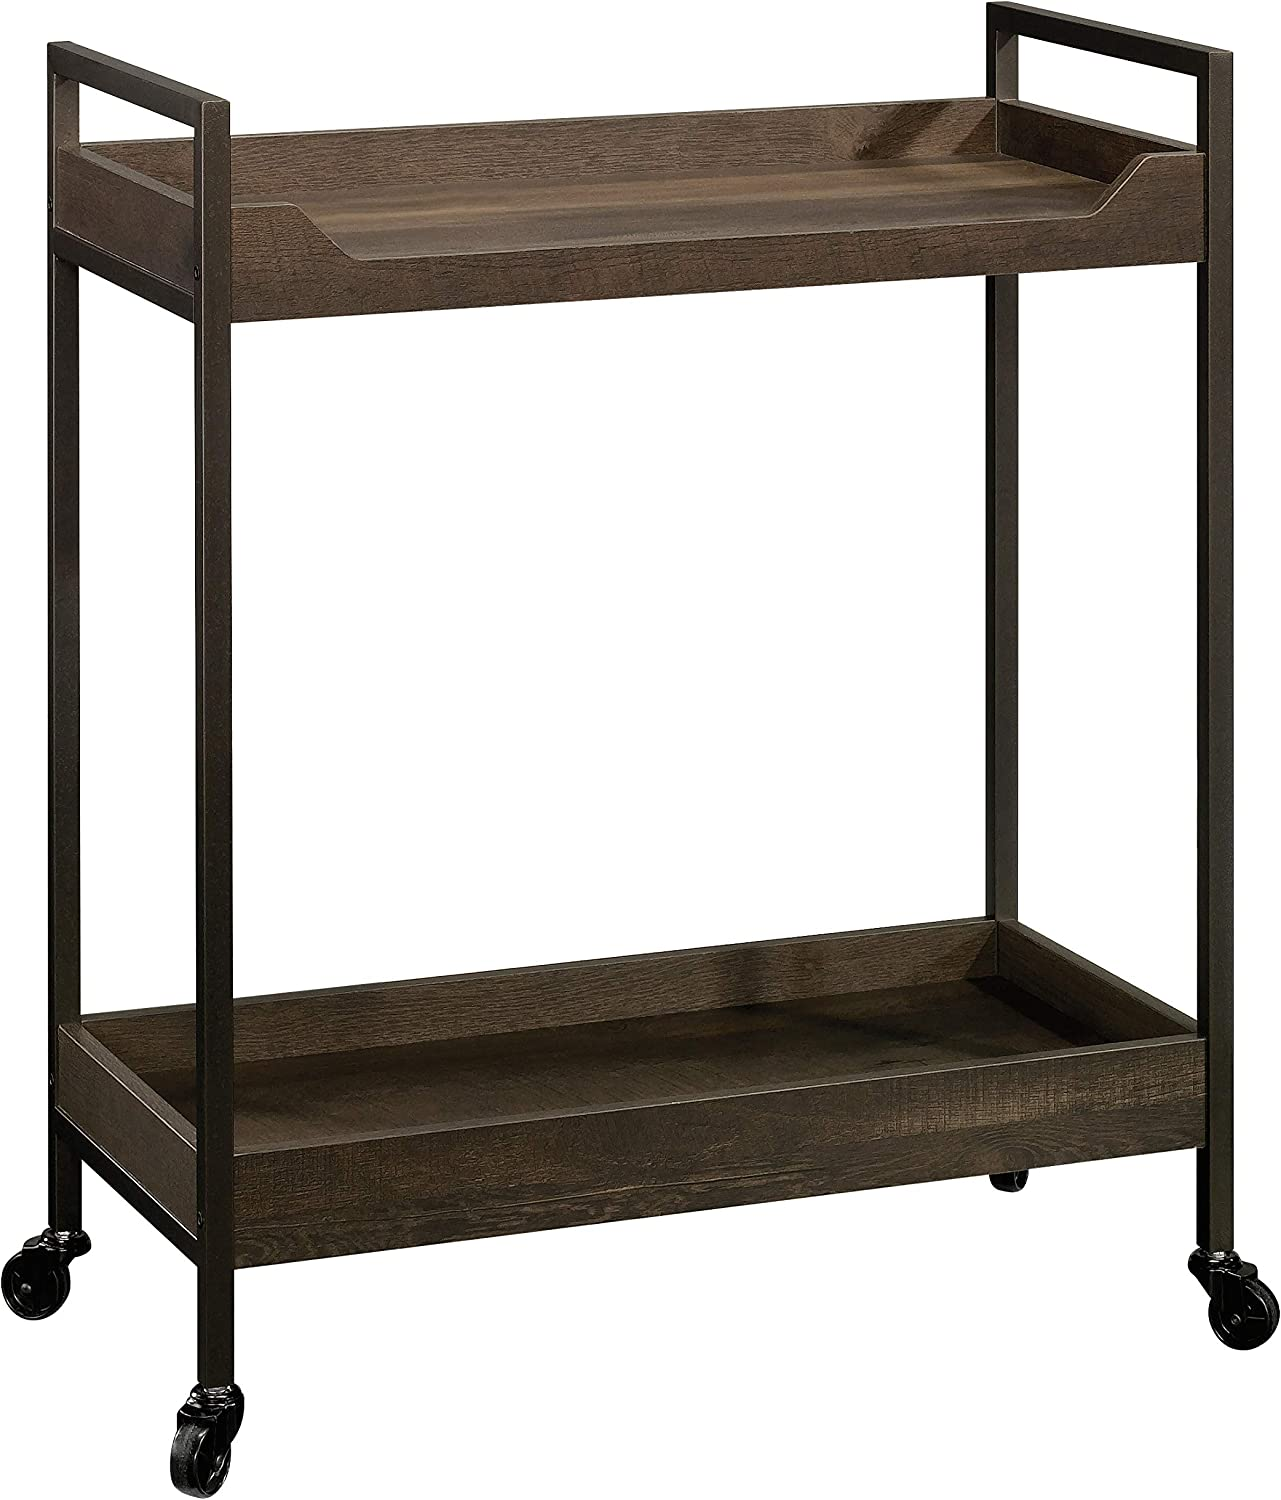 Sauder North Avenue Cart, Smoked Oak finish